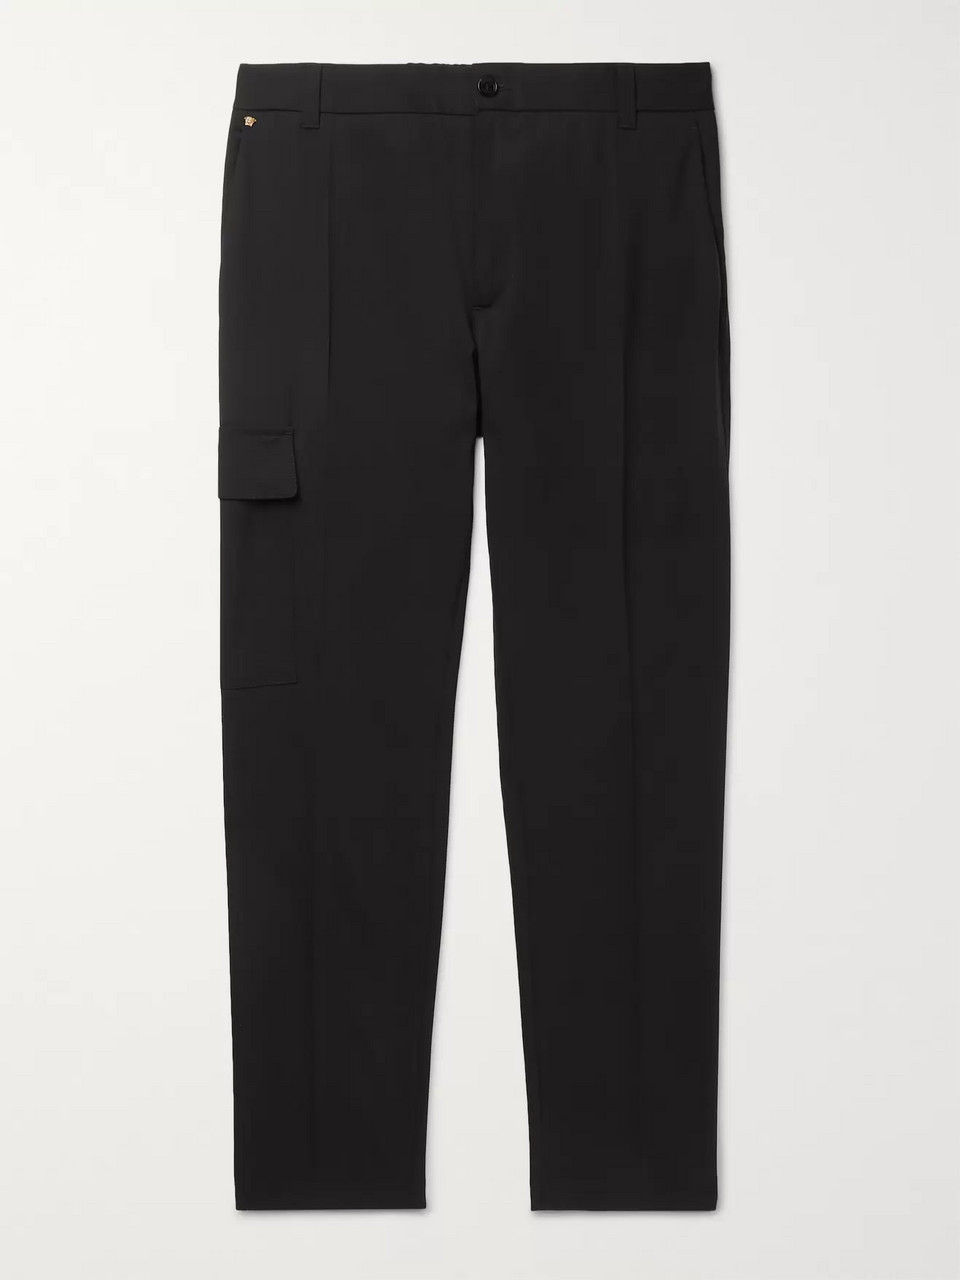 Versace Stretch Virgin Wool-Blend Cargo Trousers